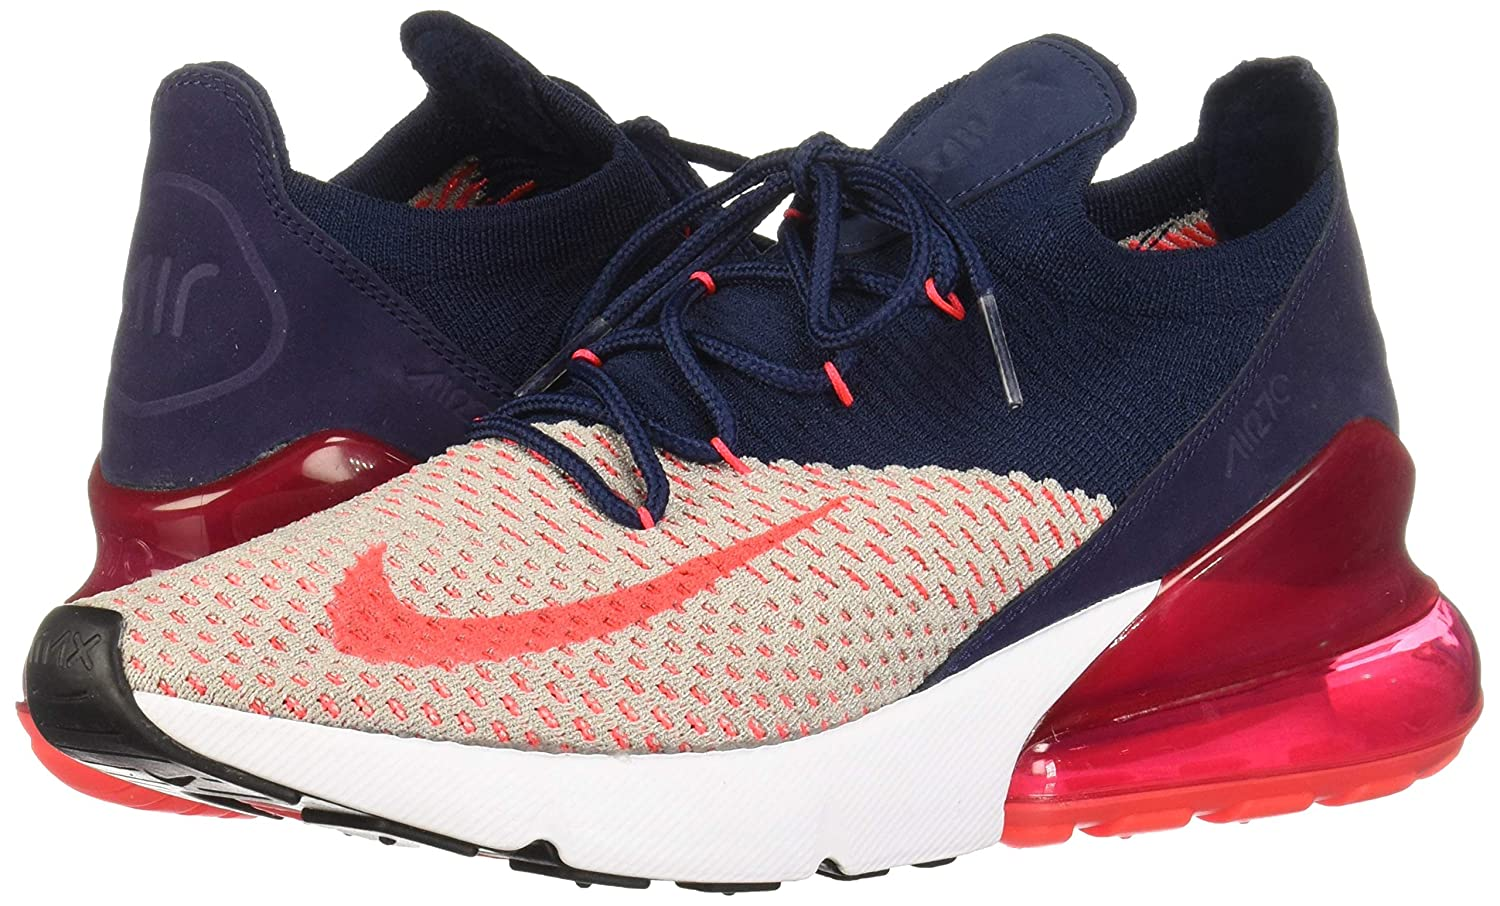 Shoes NIKE Air Max 270 Flyknit AH6803 200 Moon ParticleRed Orbit